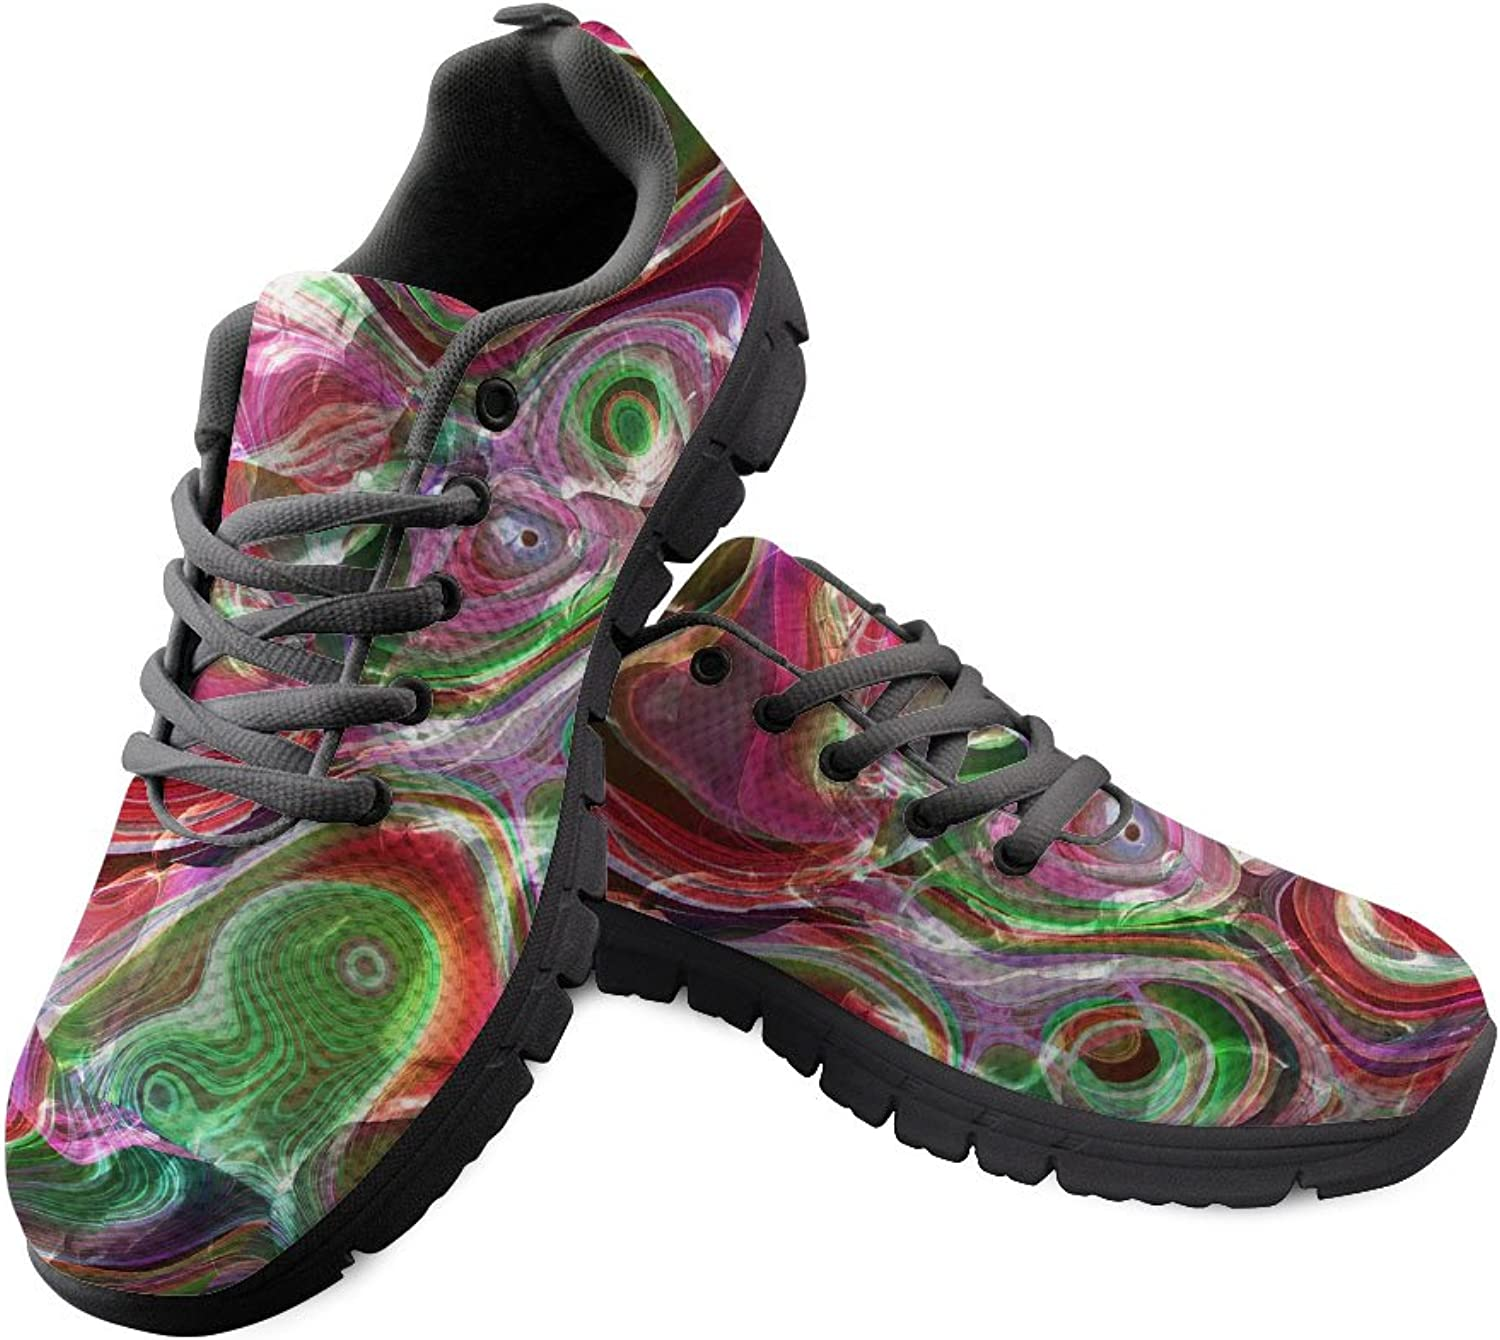 Chaqlin Man Women shoes Non Slip Training Footwear for Trainer Size 45